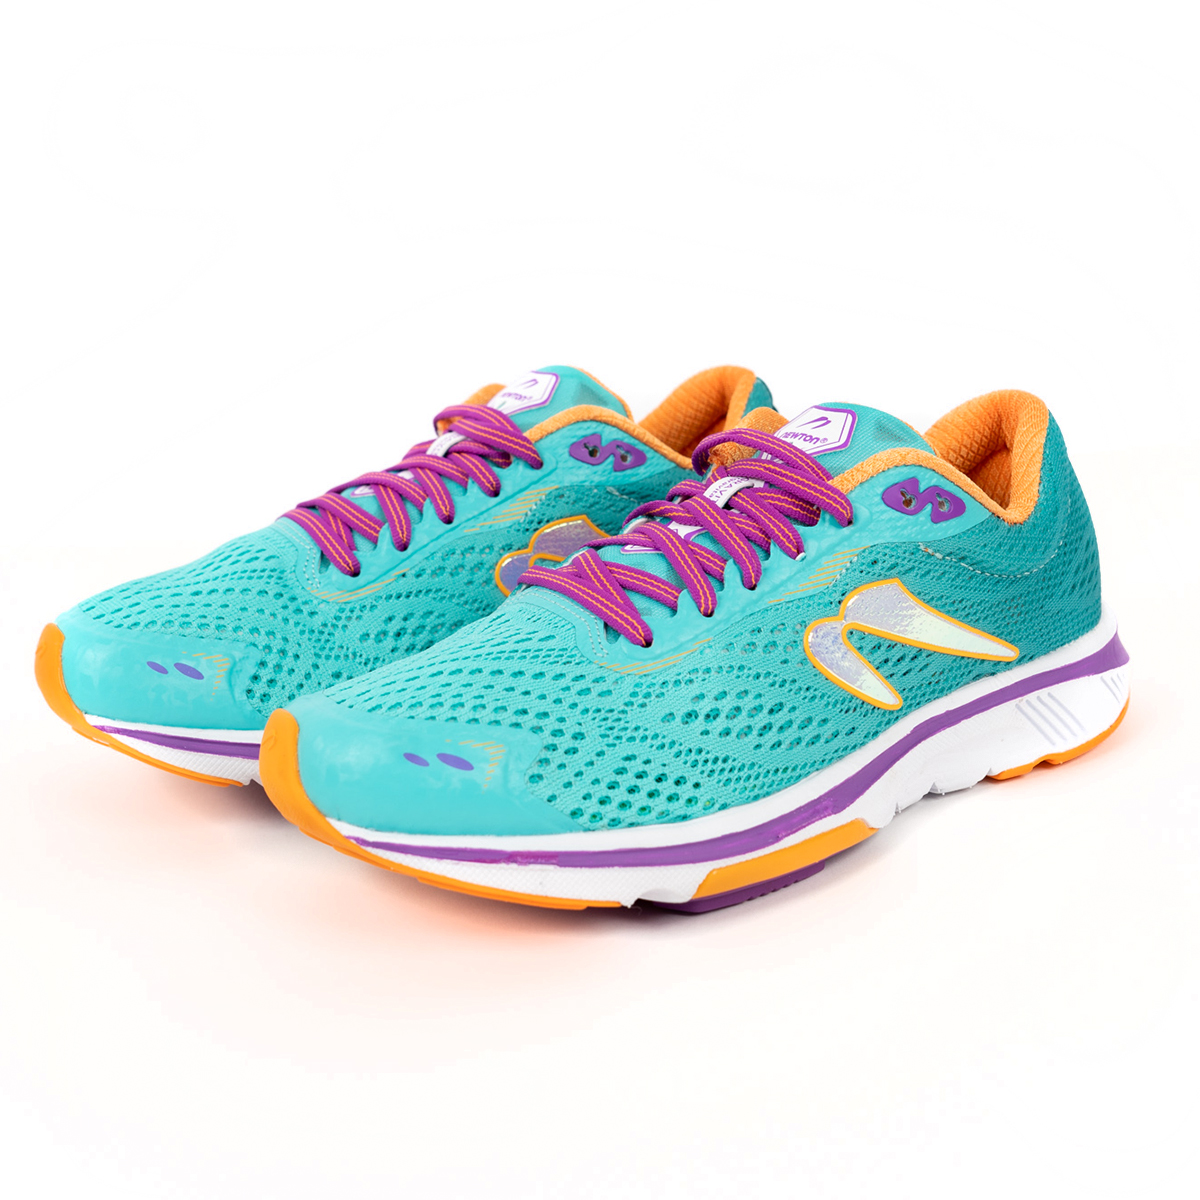 Women's Newton Gravity 9 Running Shoe - Color: Jade/Purple (Regular Width) - Size: 5, Jade/Purple, large, image 4